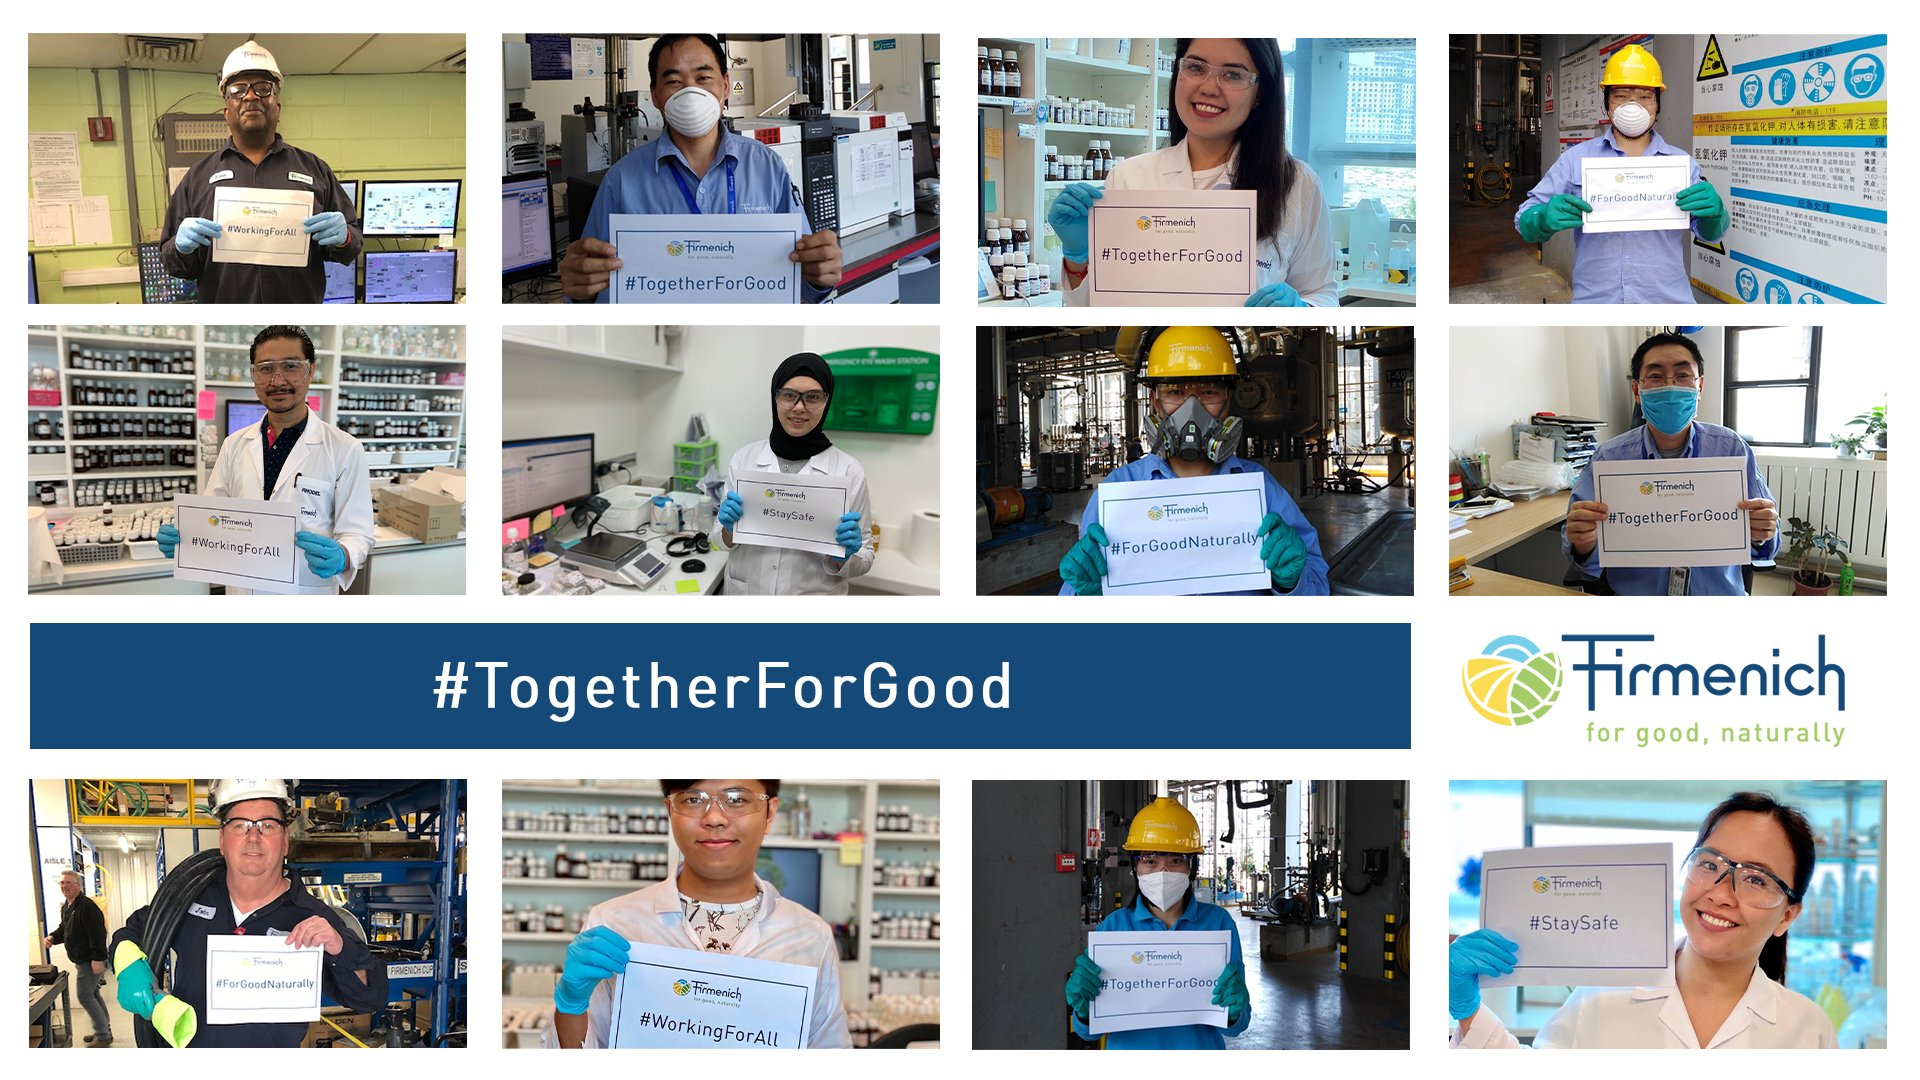 Firmenich, campagne #TogetherForGood